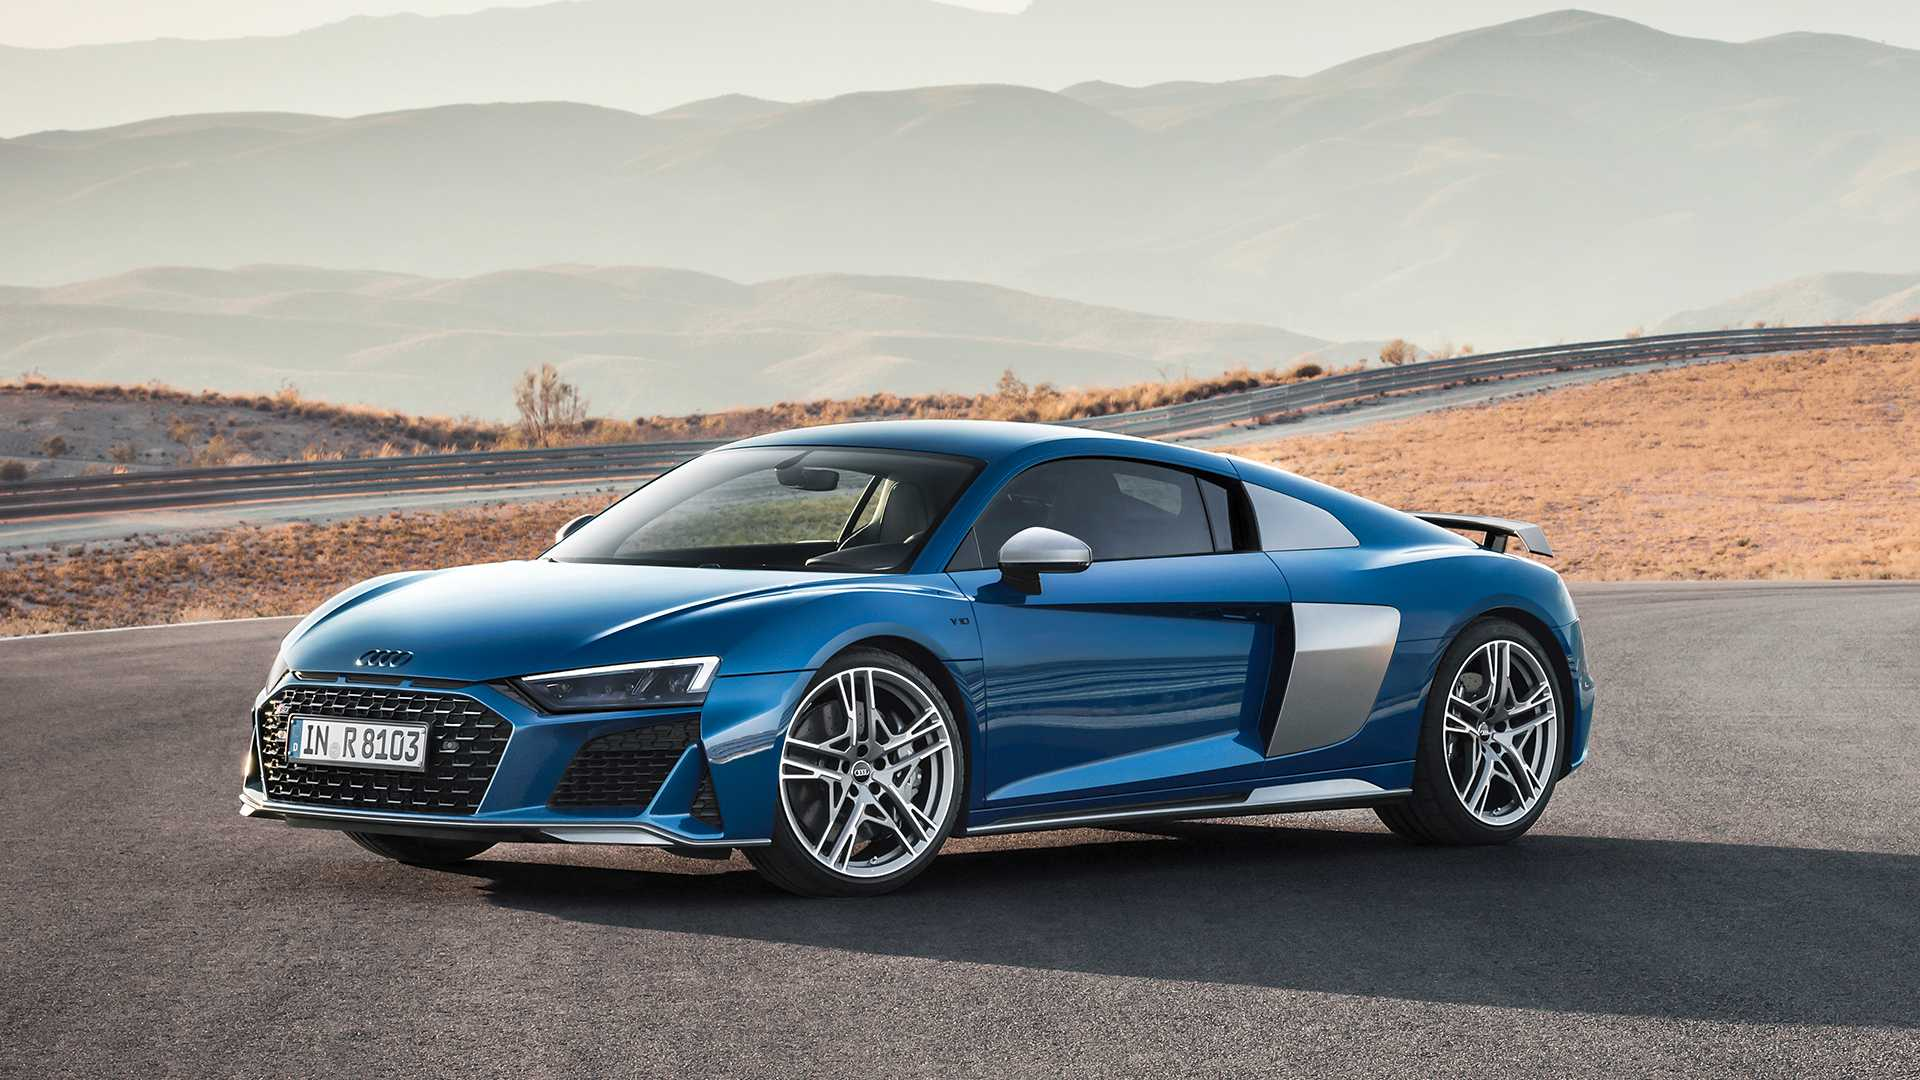 59 The Best Audi R8 2020 Price Concept